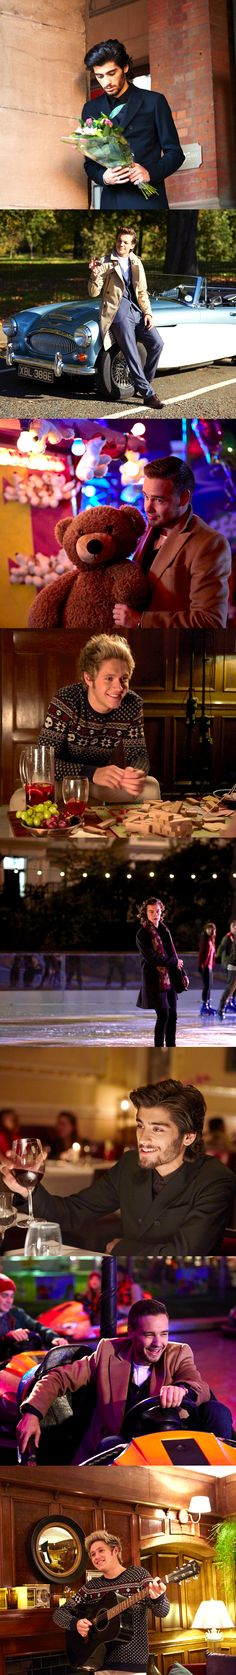 night changes is life